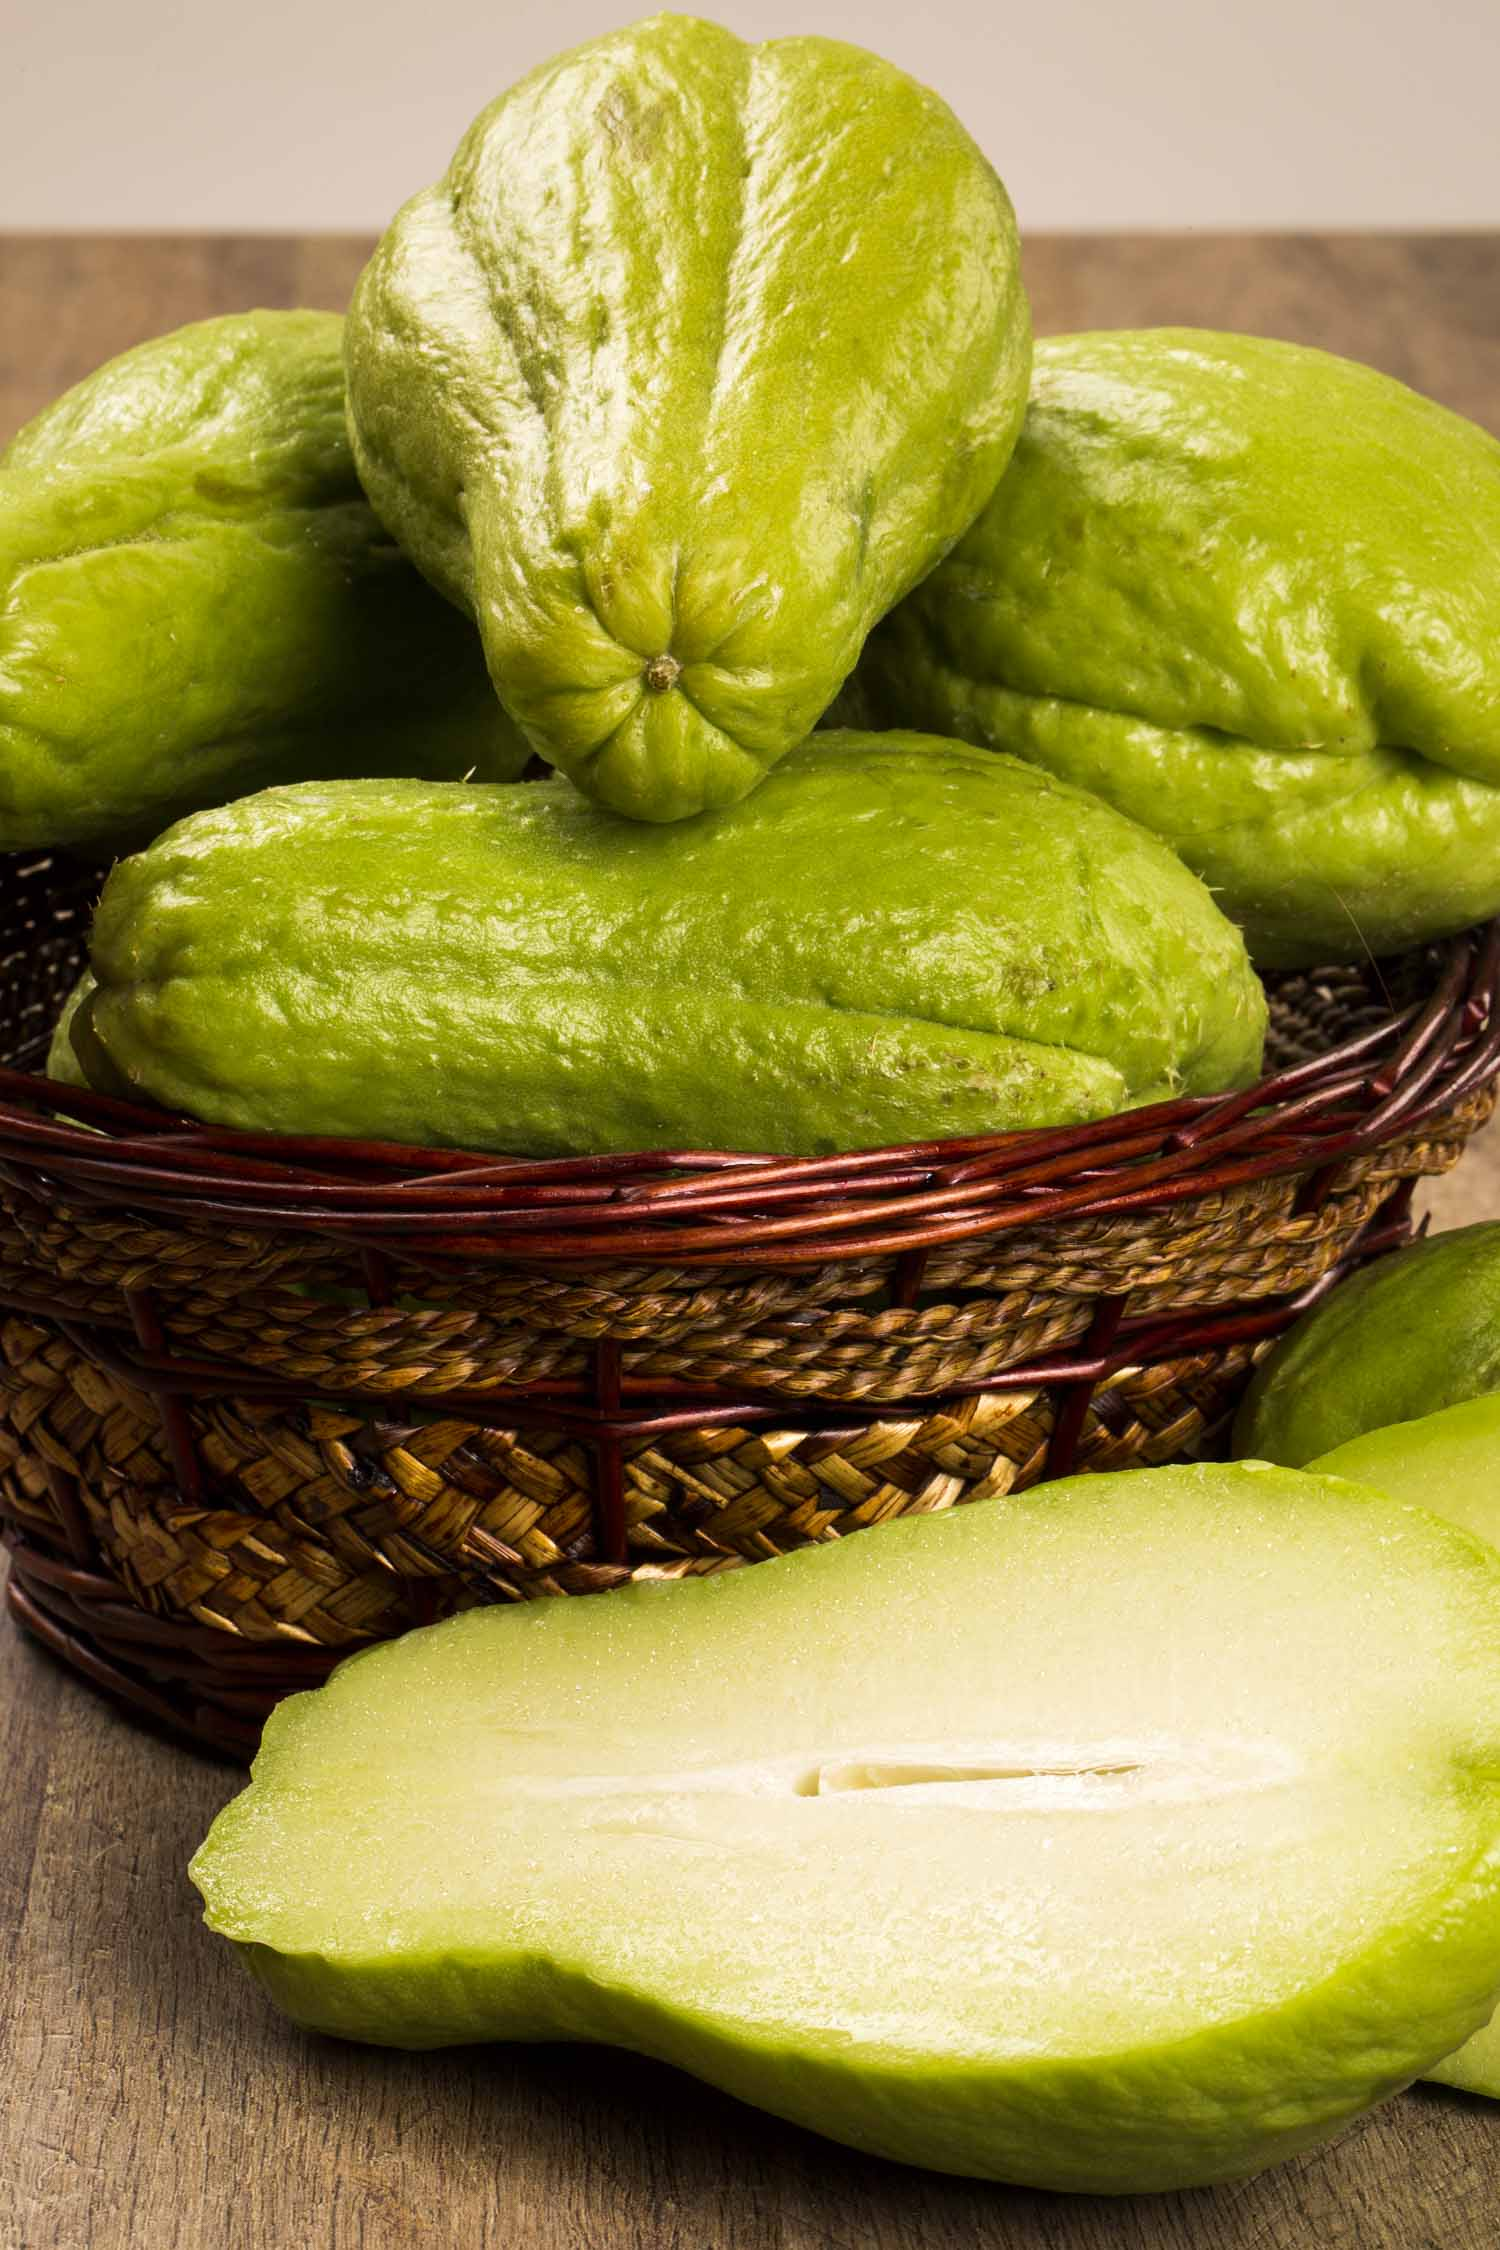 Jamaican chocho or chayote fruit, The chayote (Sechium edule) is a vegetable native to south america. Fresh Vegelable.